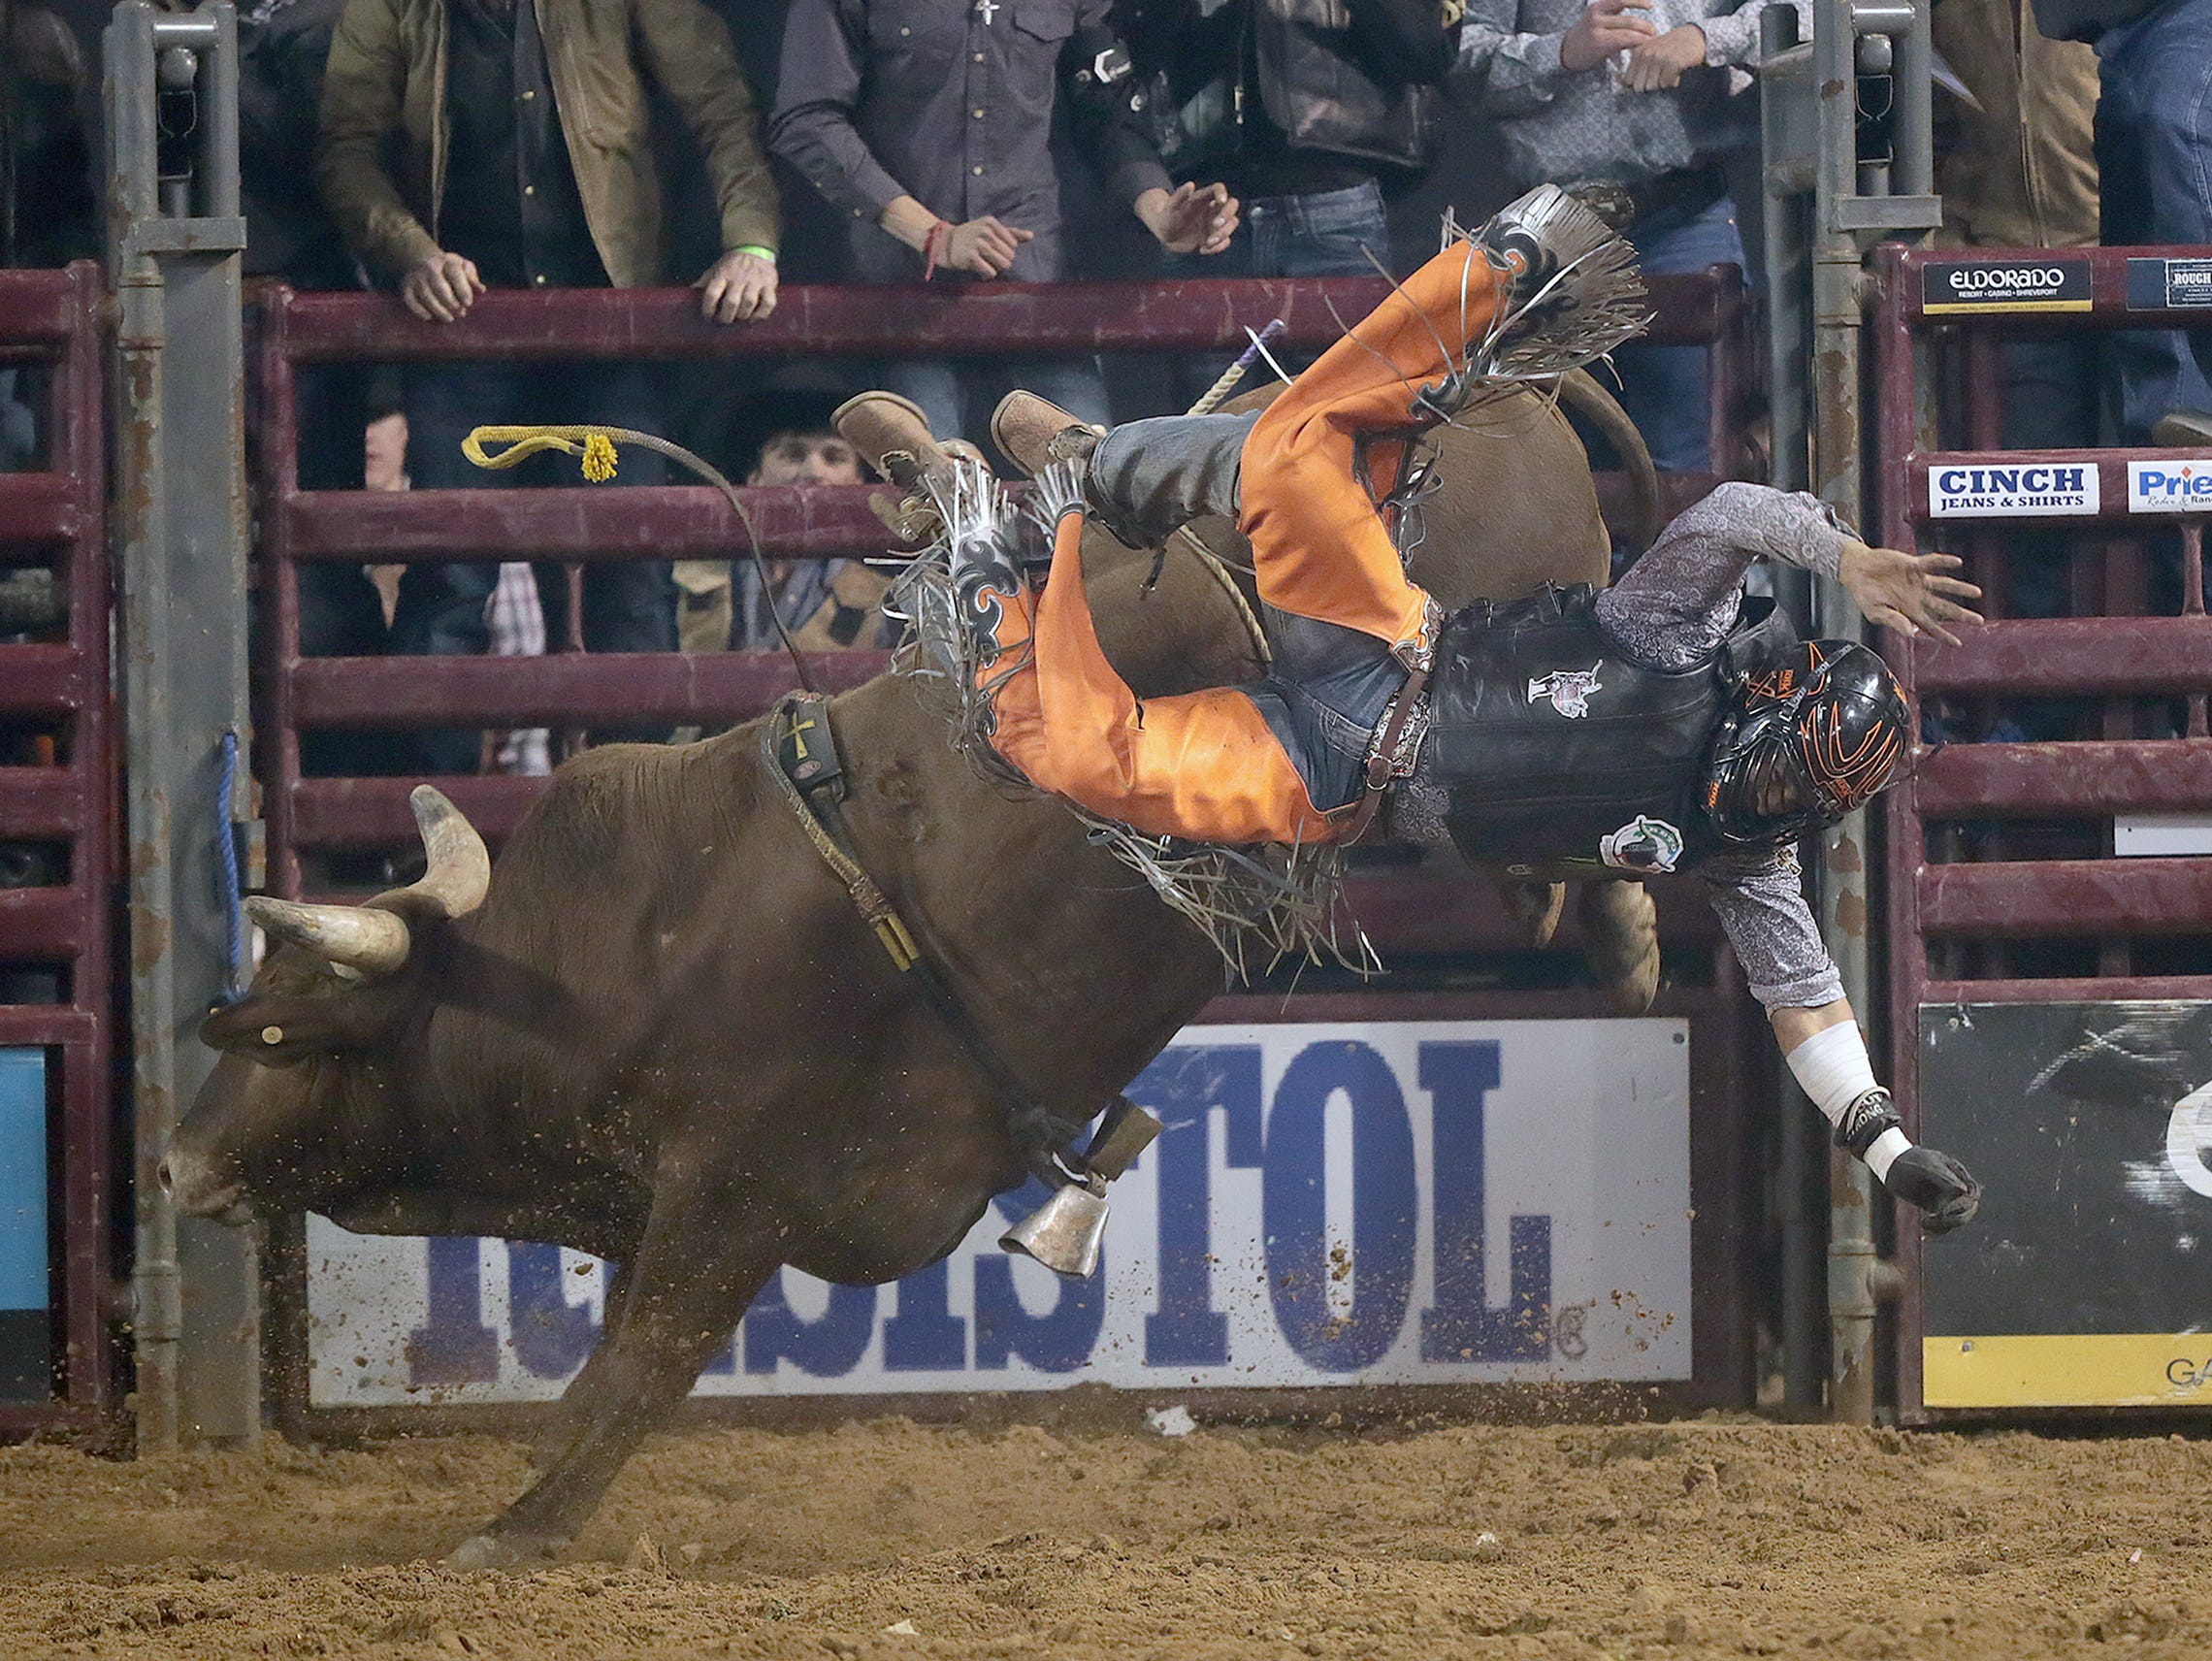 The Tuff Hedeman Tour stopped in El Paso to the delight of the sold out crowd on hand at the El Paso County Coliseum Saturday night. Cody Rostockyj of Lorena, TX won the event and a $20,000 paycheck. Twenty five riders in total went for the pay day Saturday.